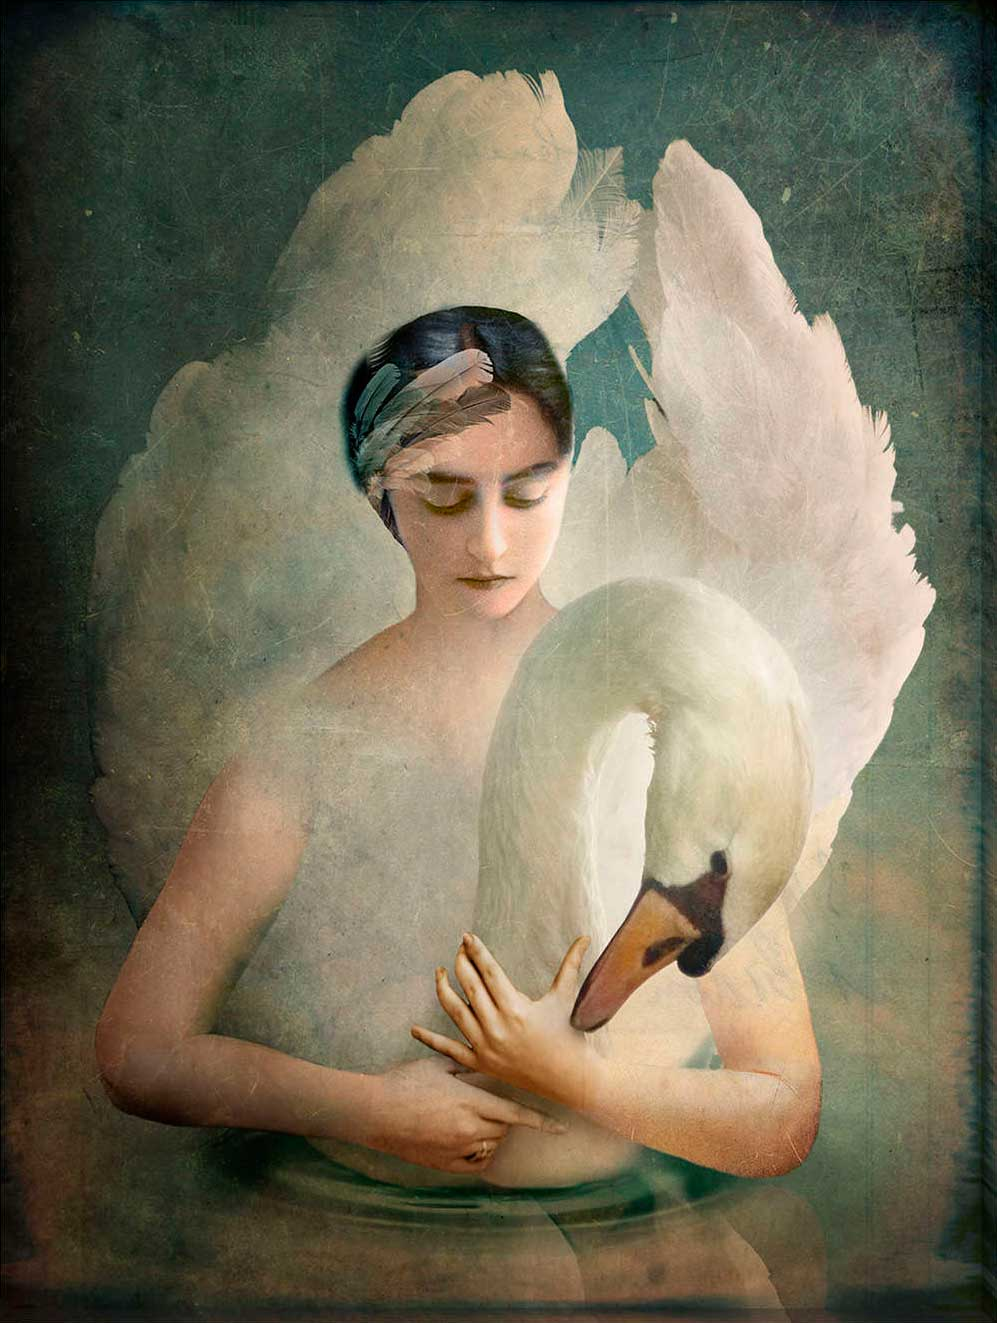 Digital Surrealism by Catrin Welz-Stein: touching and exquisitely gloomy